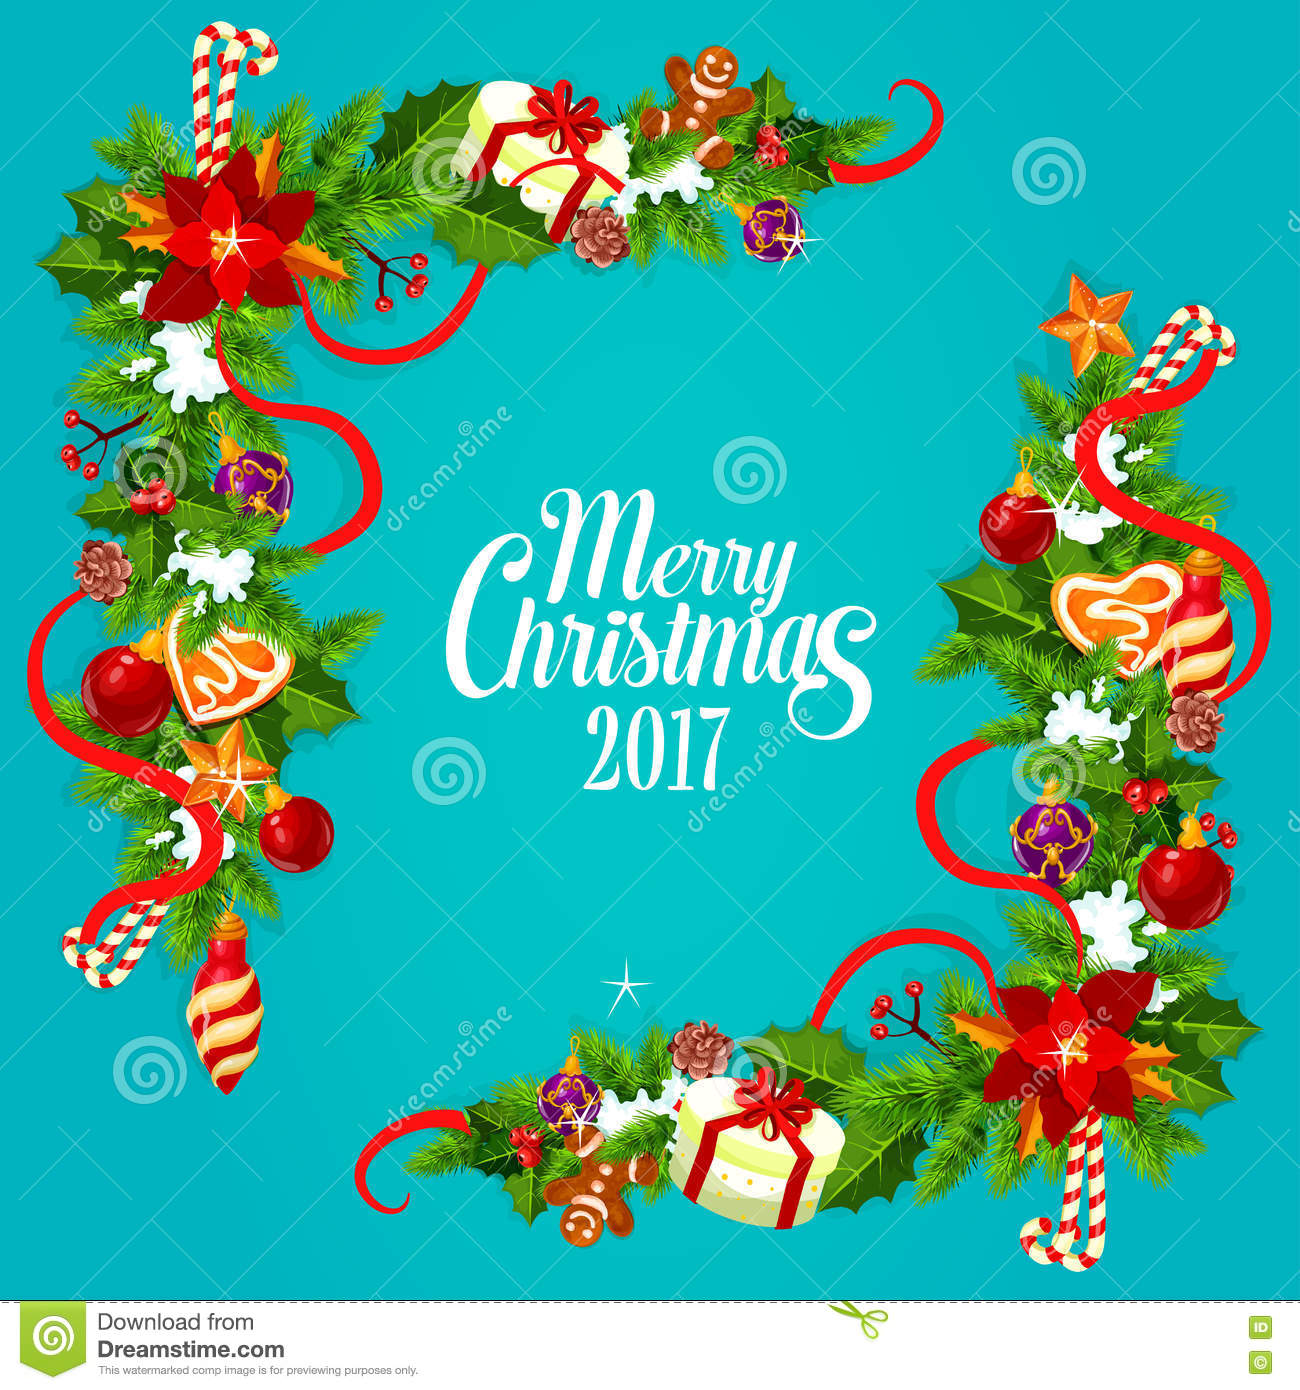 Download Christmas Card With Holly And Pine Garland Corner Stock Vector